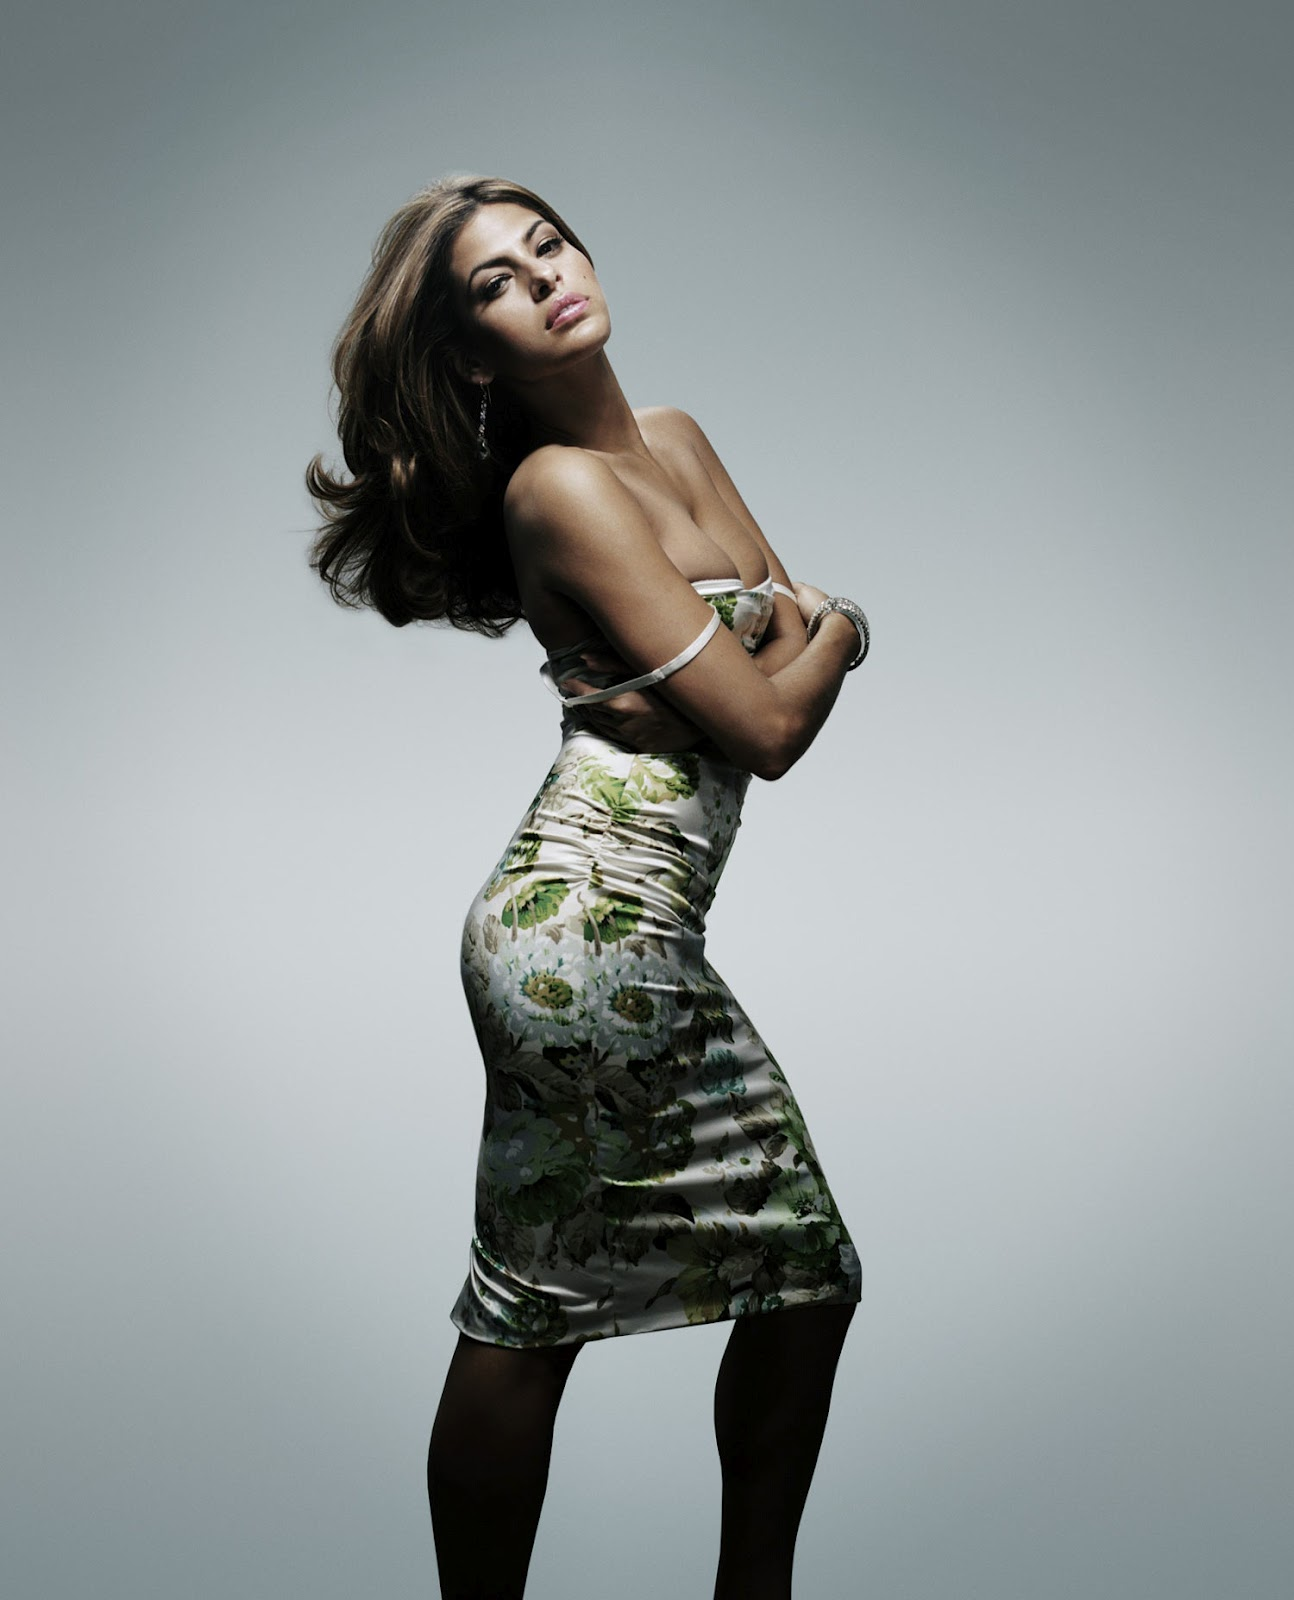 eva mendes nice photo gallery hot actress world. Black Bedroom Furniture Sets. Home Design Ideas